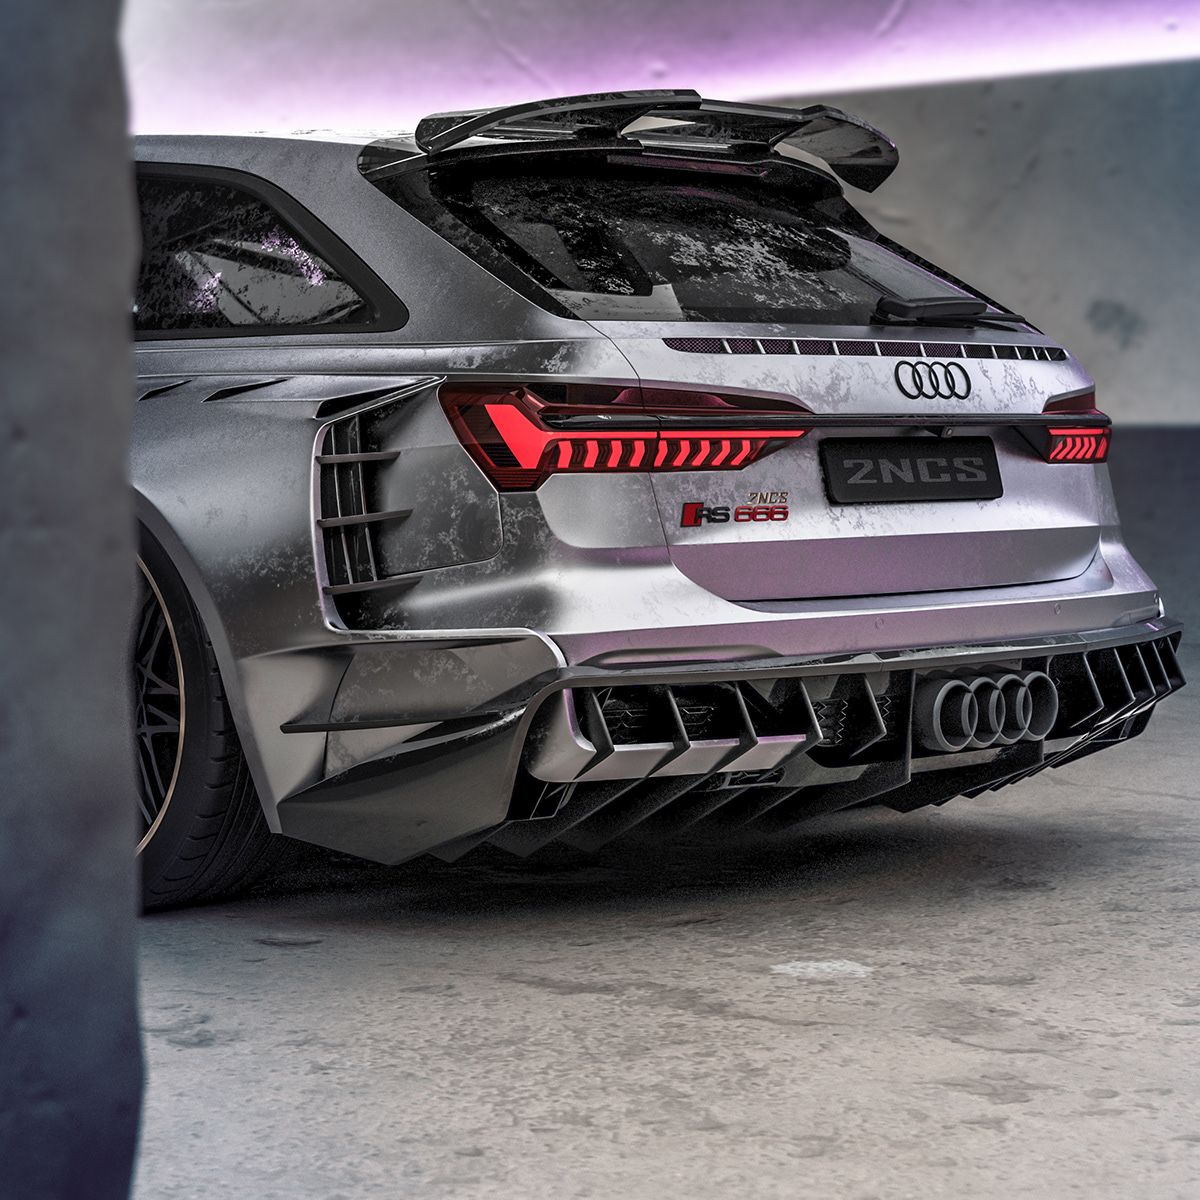 2020 Audi Rs6 2ncs On Behance In 2020 Auto S Motoren Auto S En Motoren Motor